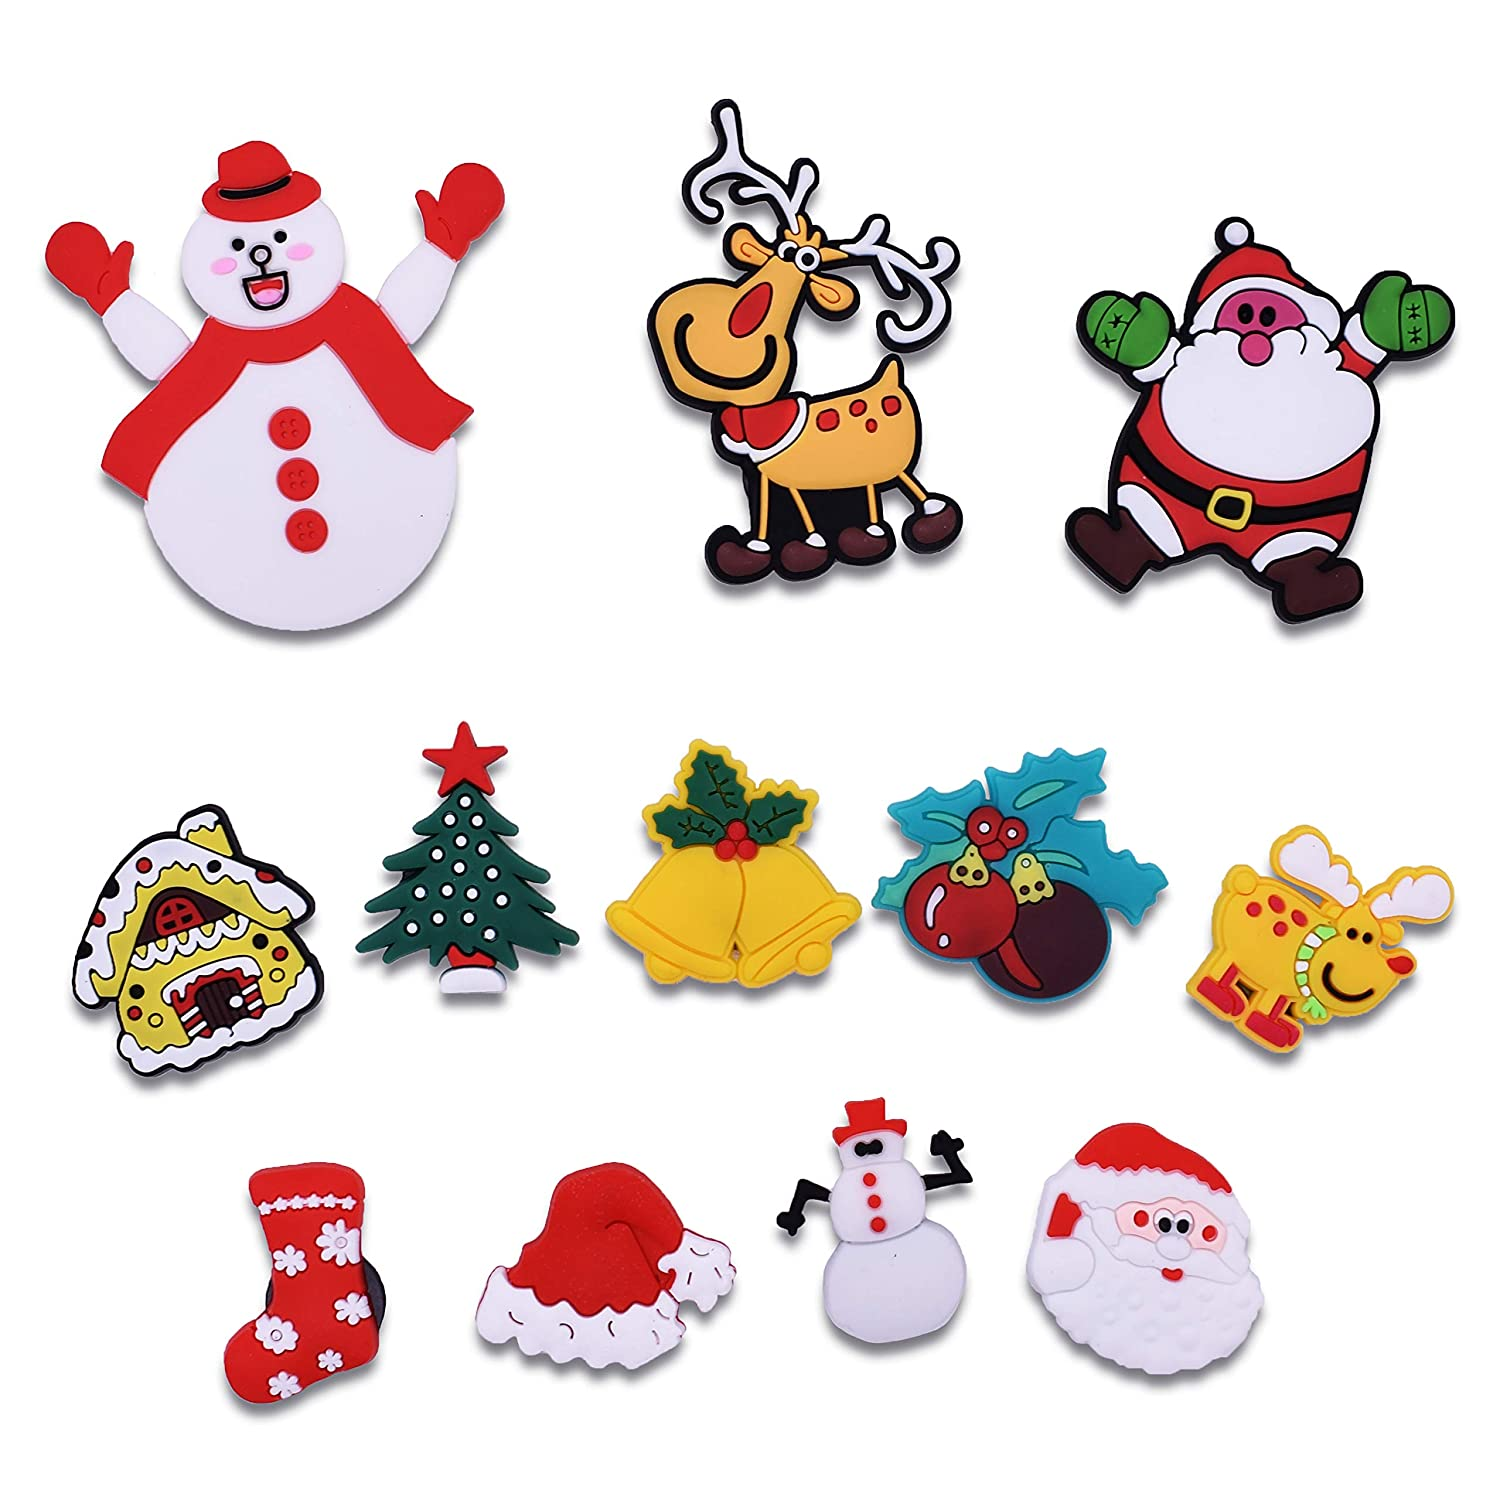 XHAOYEAHX Christmas Stant Claus Christmas Tree Socks Deer Snowman Bell Magnets Refrigerator Fridge Magnetic Funny Stickers Home Decor for Refrigerator Office Cabinets Whiteboards Photo Decorative12PCS